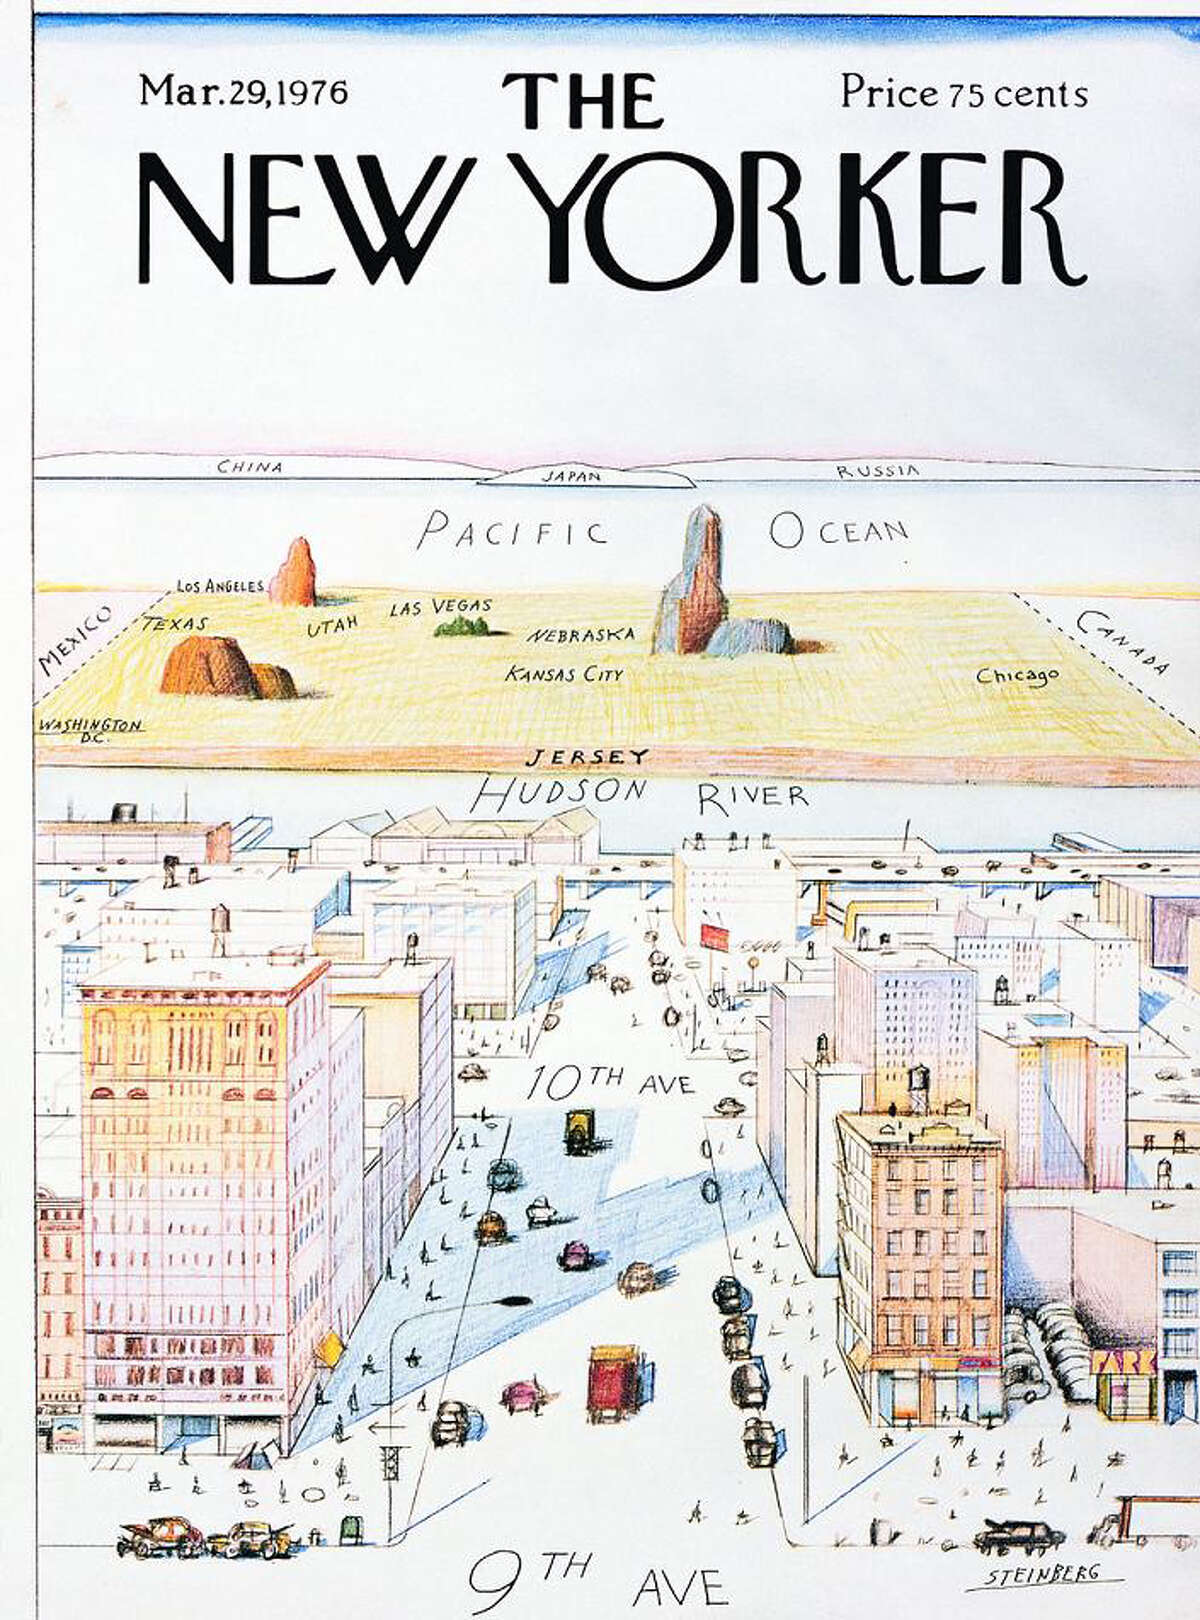 The most famous Saul Steinberg piece for The New Yorker was his 1976 cover art depicting New York City's place in America.